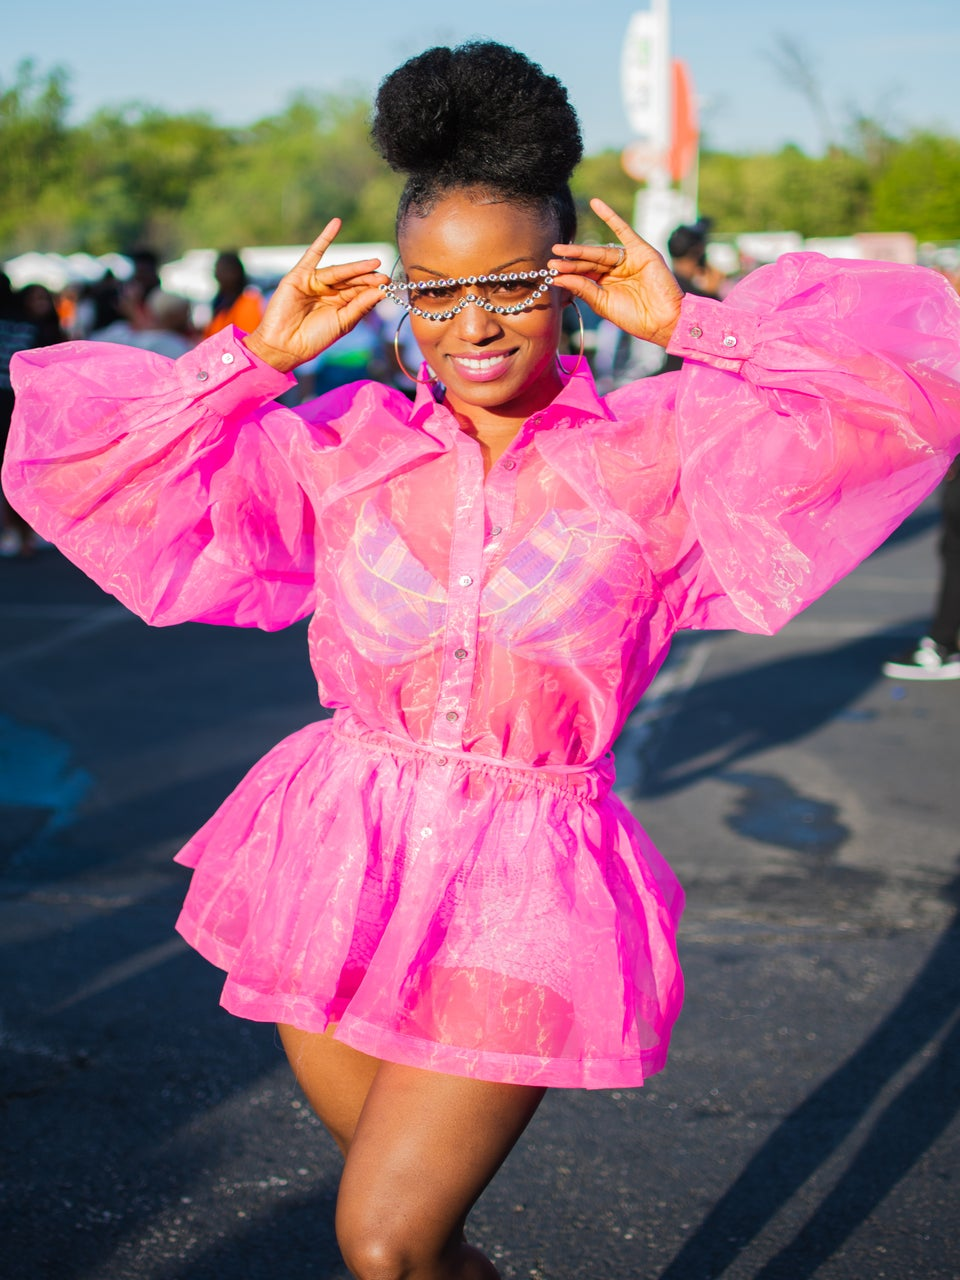 The Most Stylish Moments at Broccoli City Festival 2019